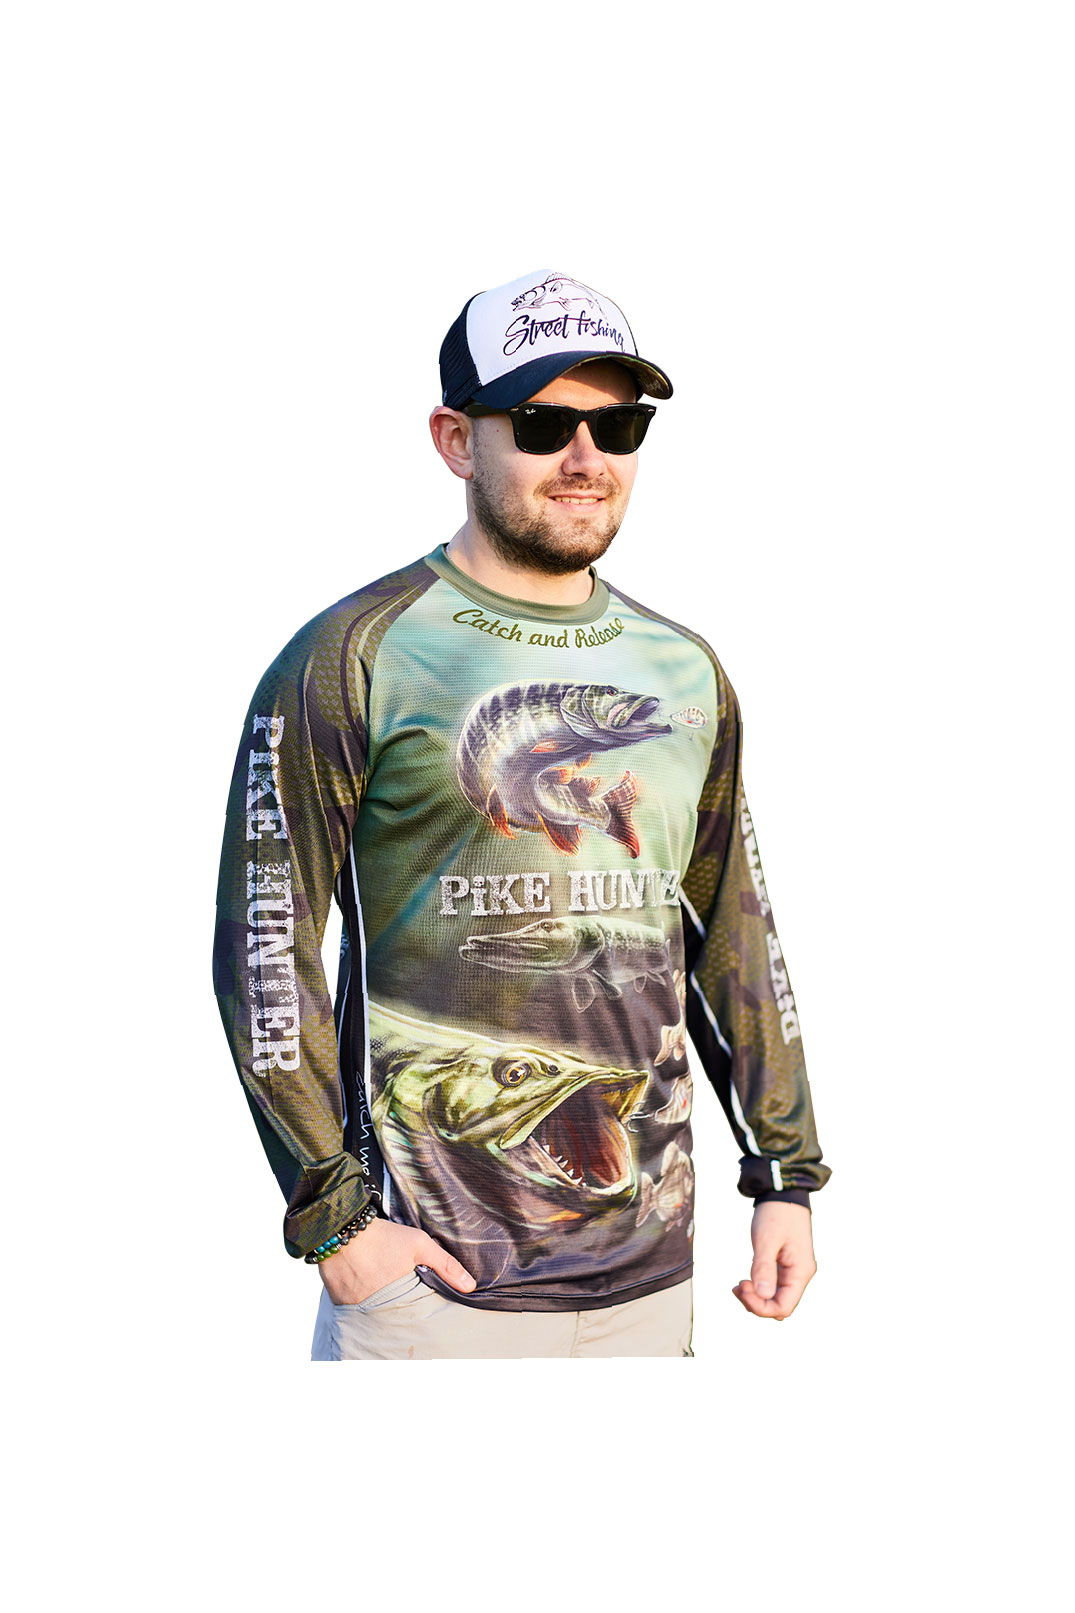 Fishingwear Pike hunter Jersey longsleeve